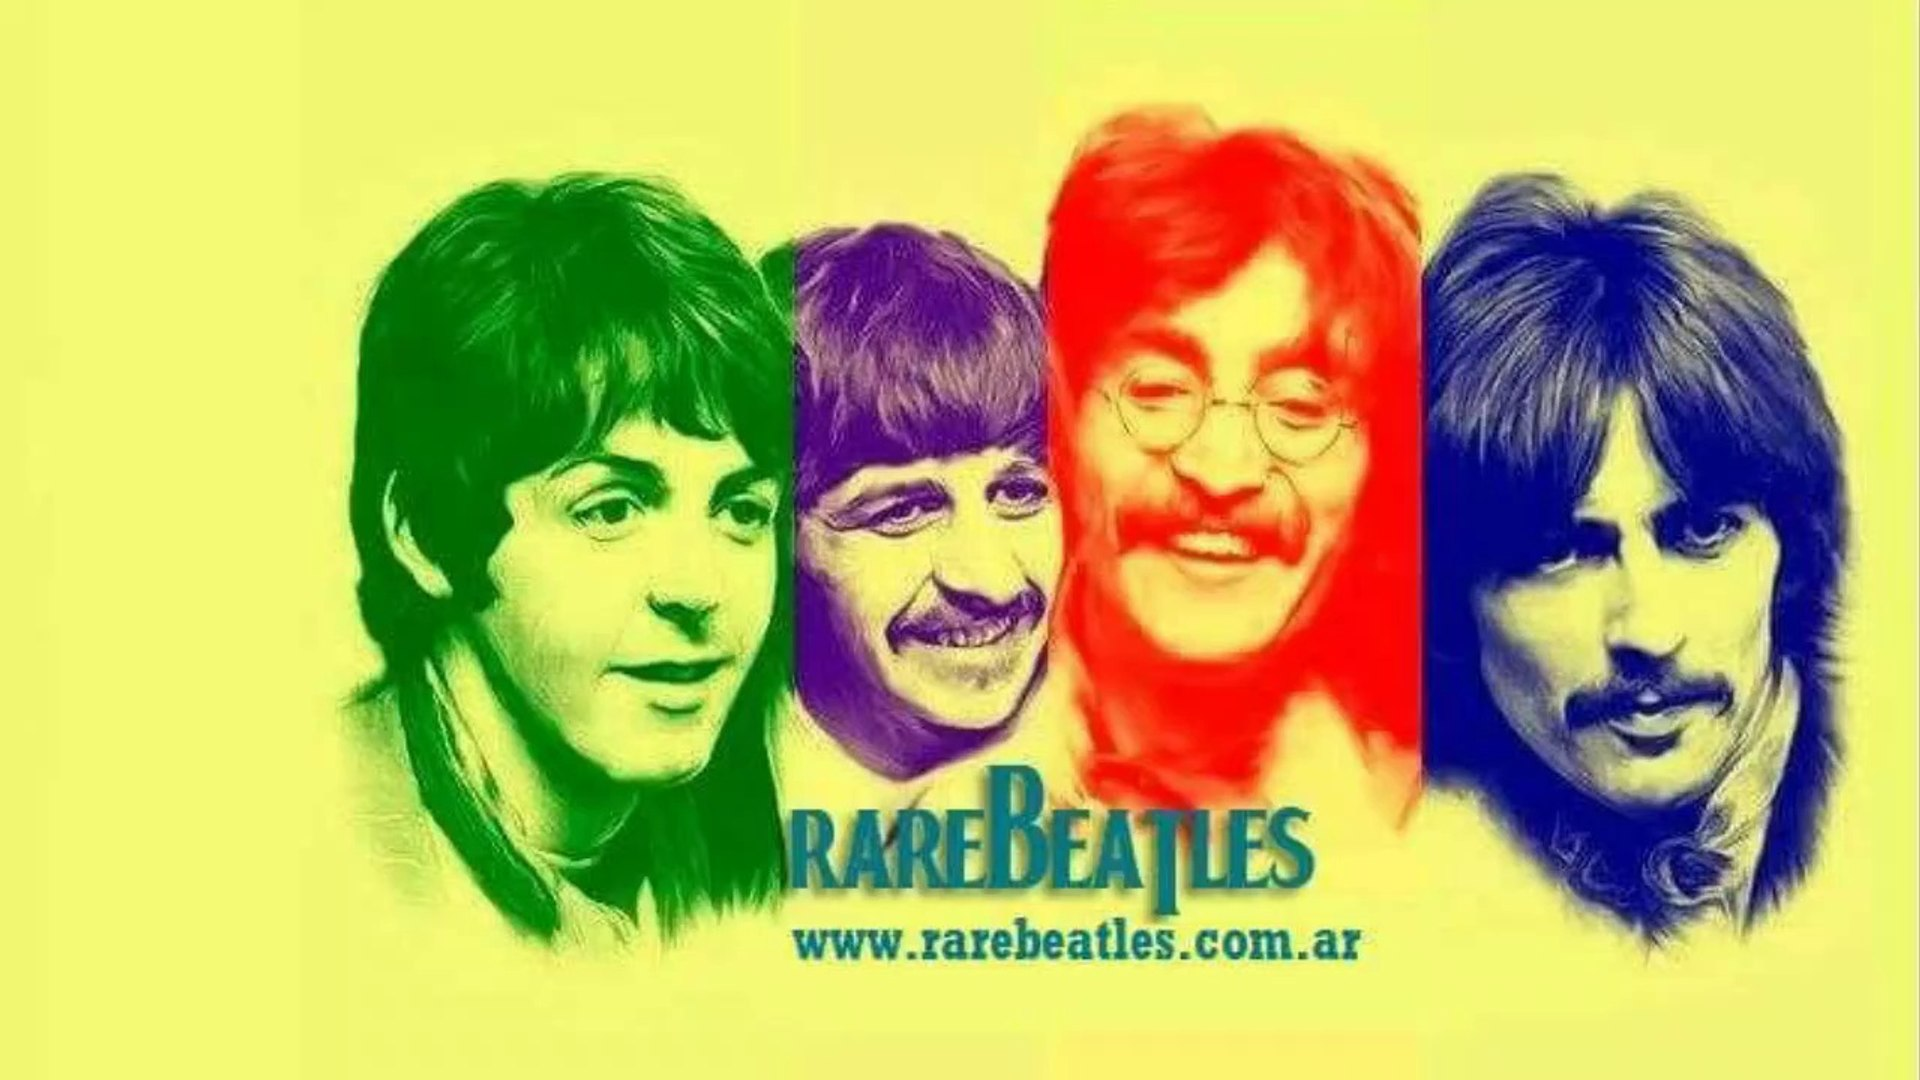 Paul McCartney & Wings - Band on the run (voces, bajo, bateria)